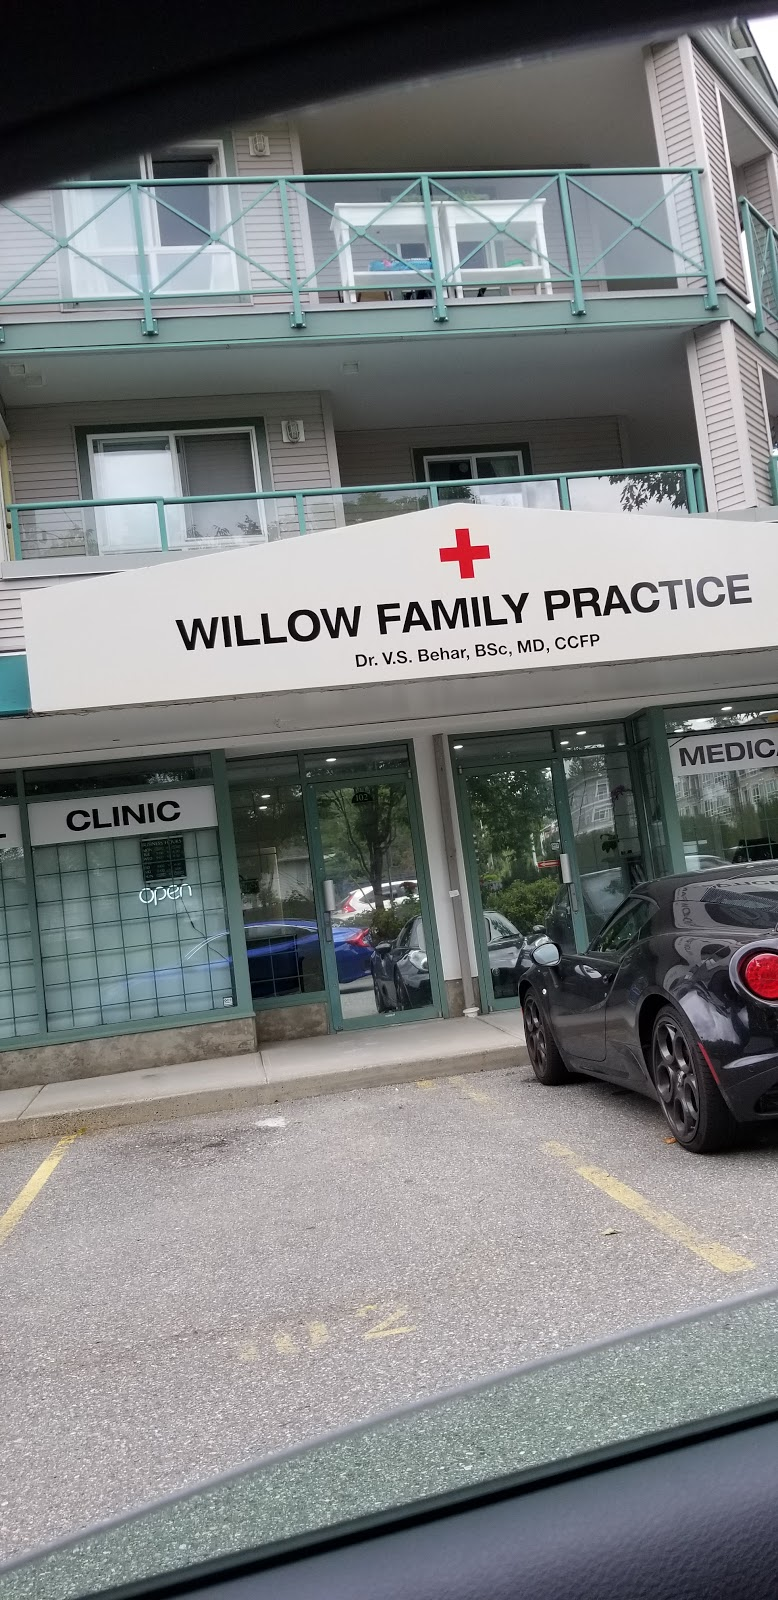 Willow Family Practice | health | 19610 64 Ave Unit 101-102, Langley City, BC V2Y 1H3, Canada | 6045398016 OR +1 604-539-8016